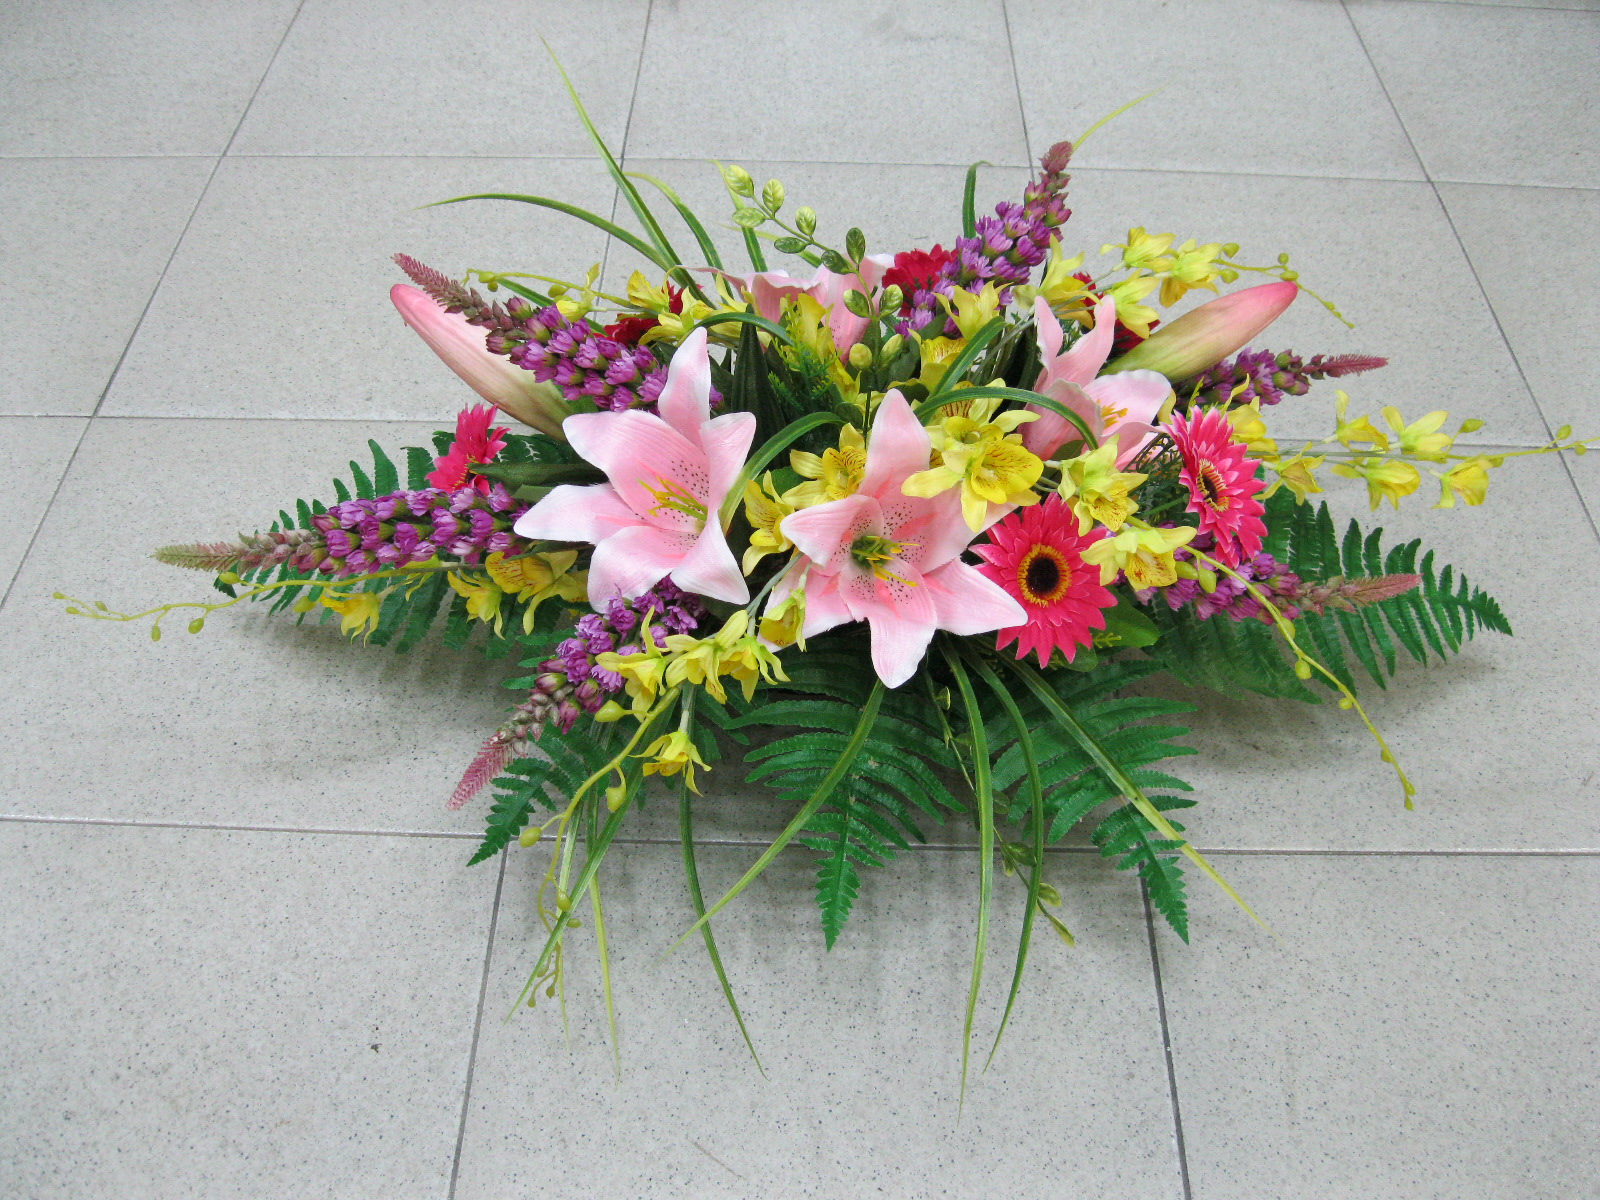 Hoi Kee Flower Shop Conference Table Floral Arrangement